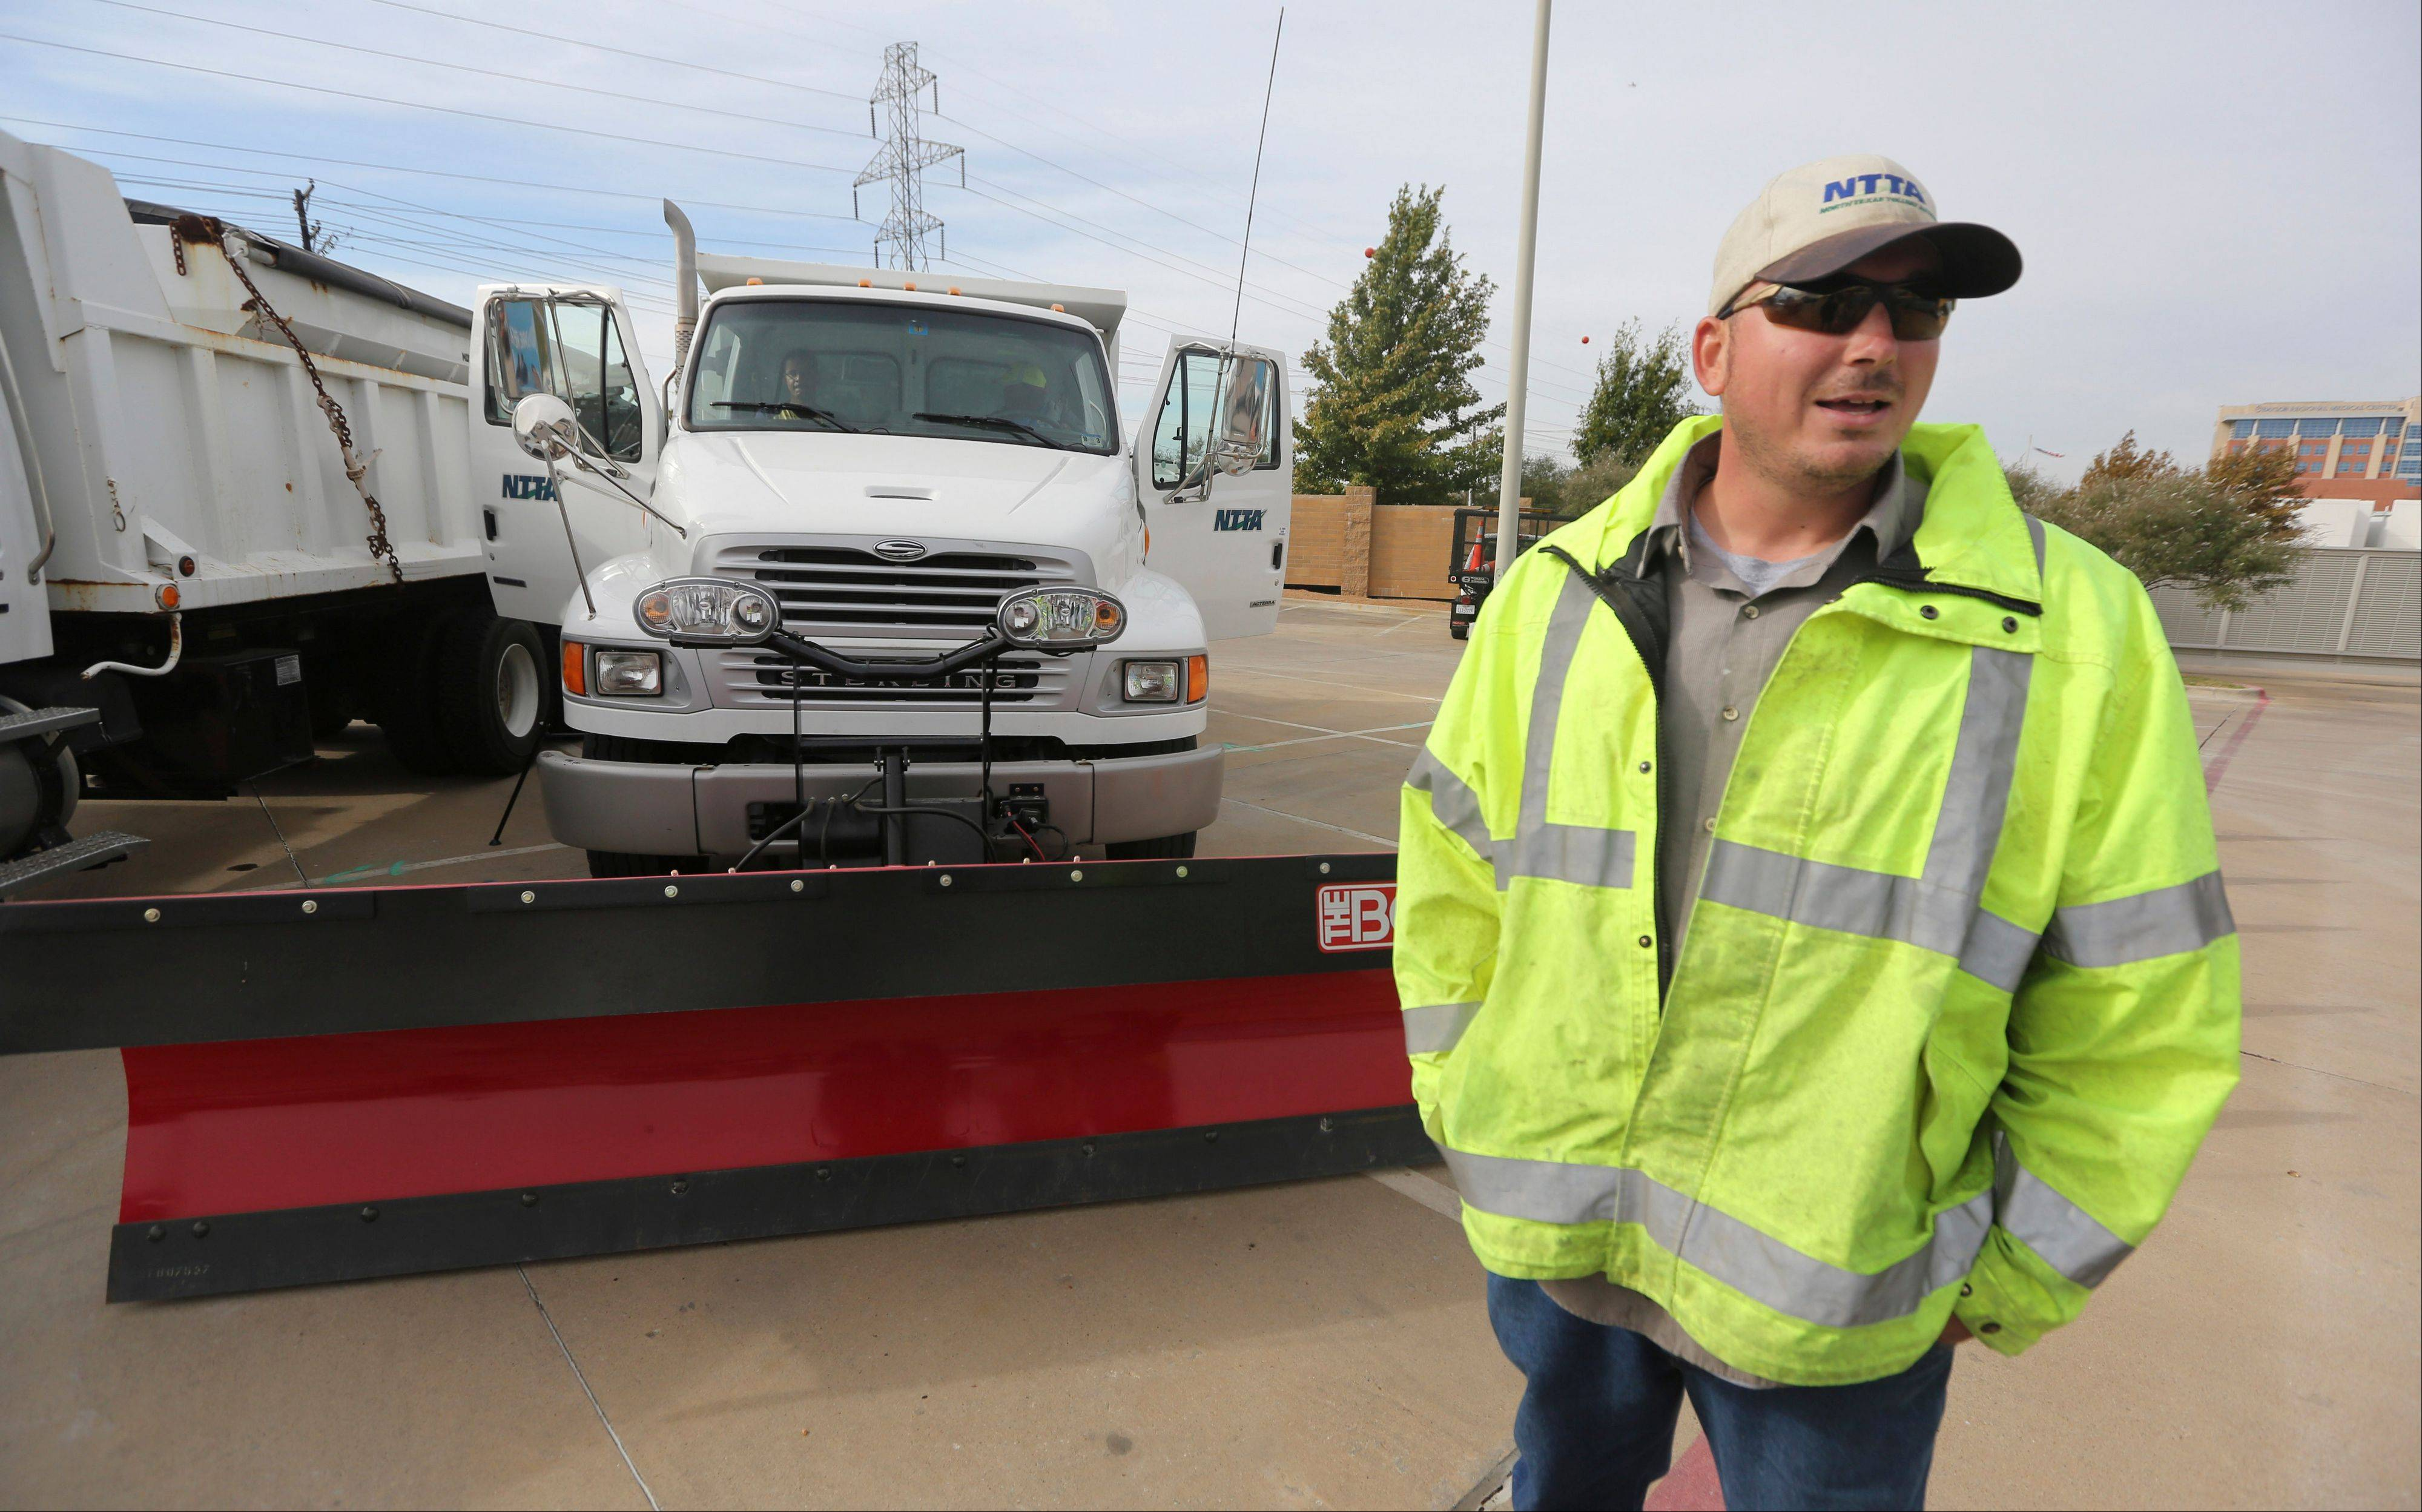 Driver Travis Roebuck talks about driving a snowplow for the North Texas Tollway Authority in Plano, Texas.